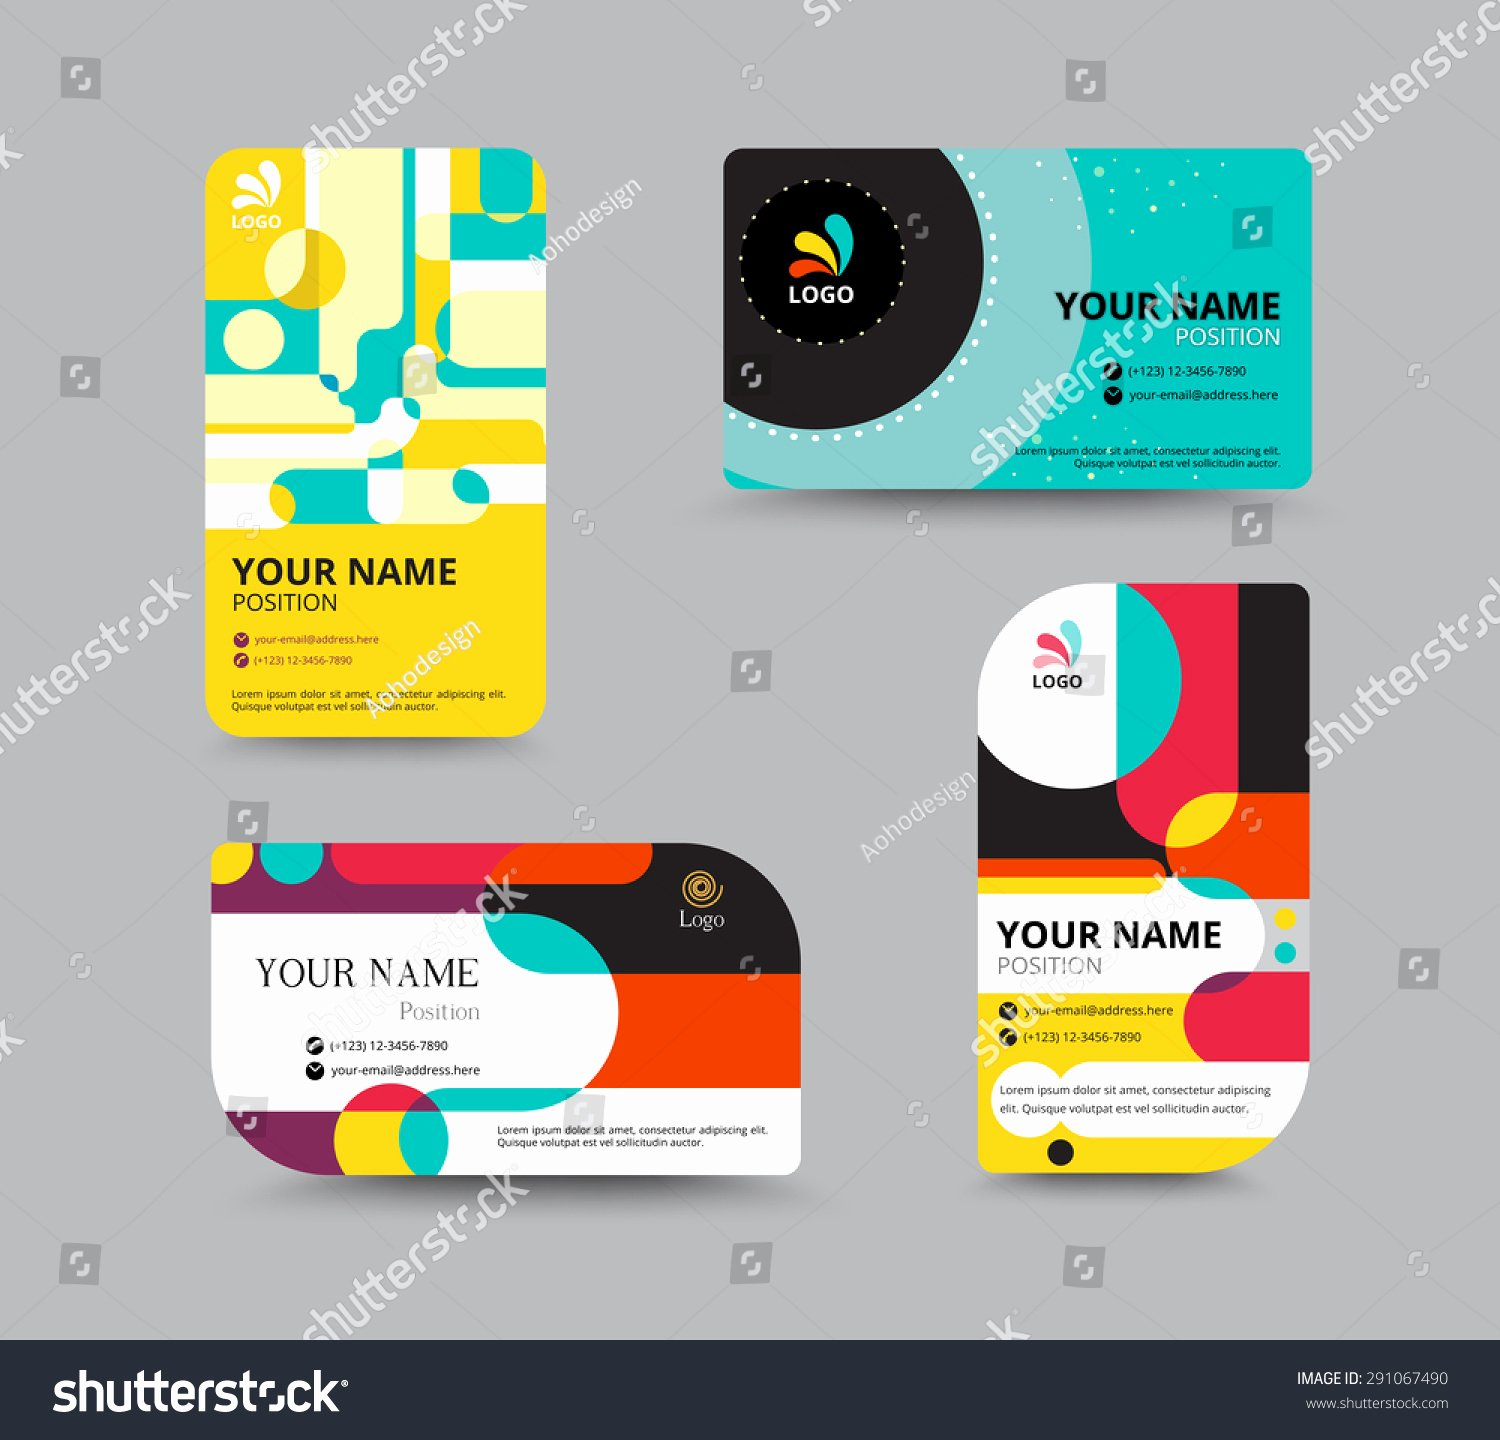 Business Card Template Name Card Design for Business